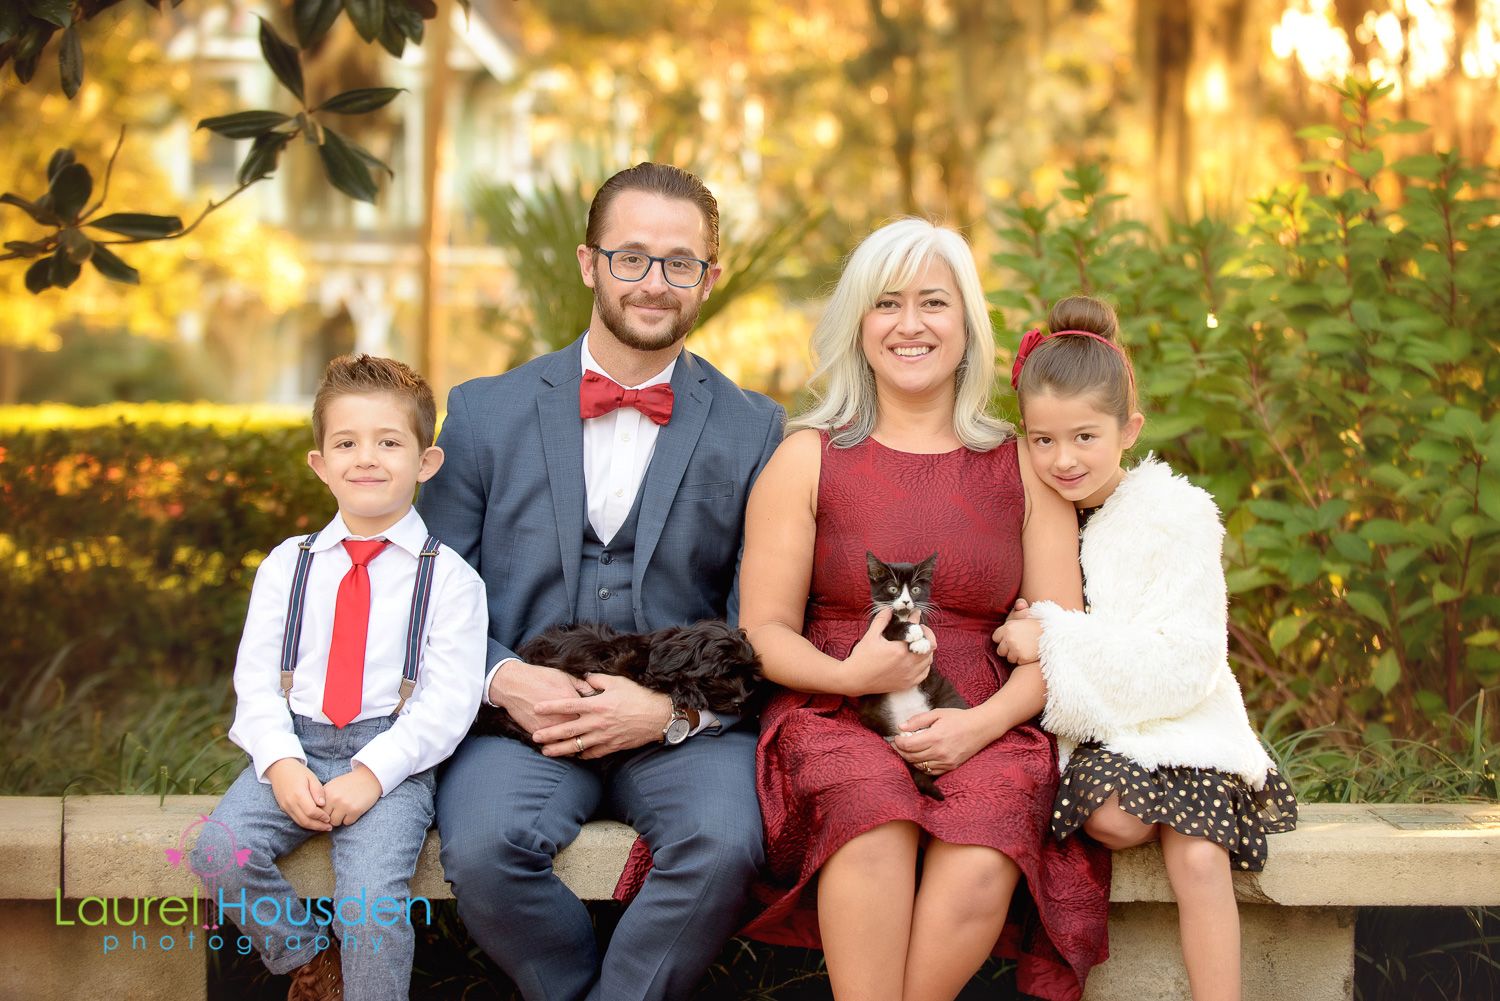 What a treat to be able to photograph the family with their treasured pets. Aren't they adorable!